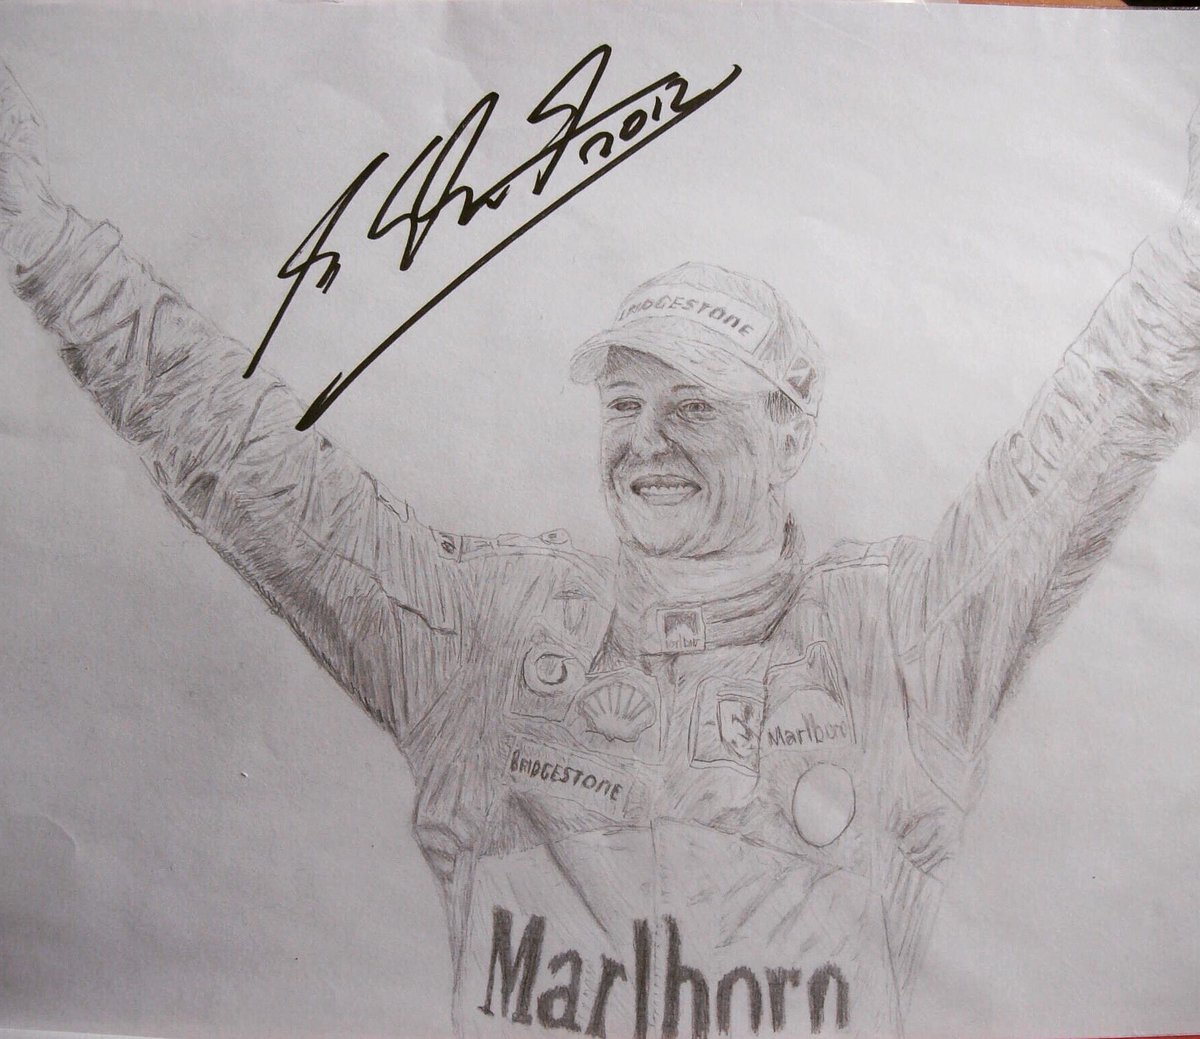 @bbcf1 My drawing of the best driver of all time, signed by the man himself! #KeepFightingMichael #bbcf1 https://t.co/p7YeDouxfJ